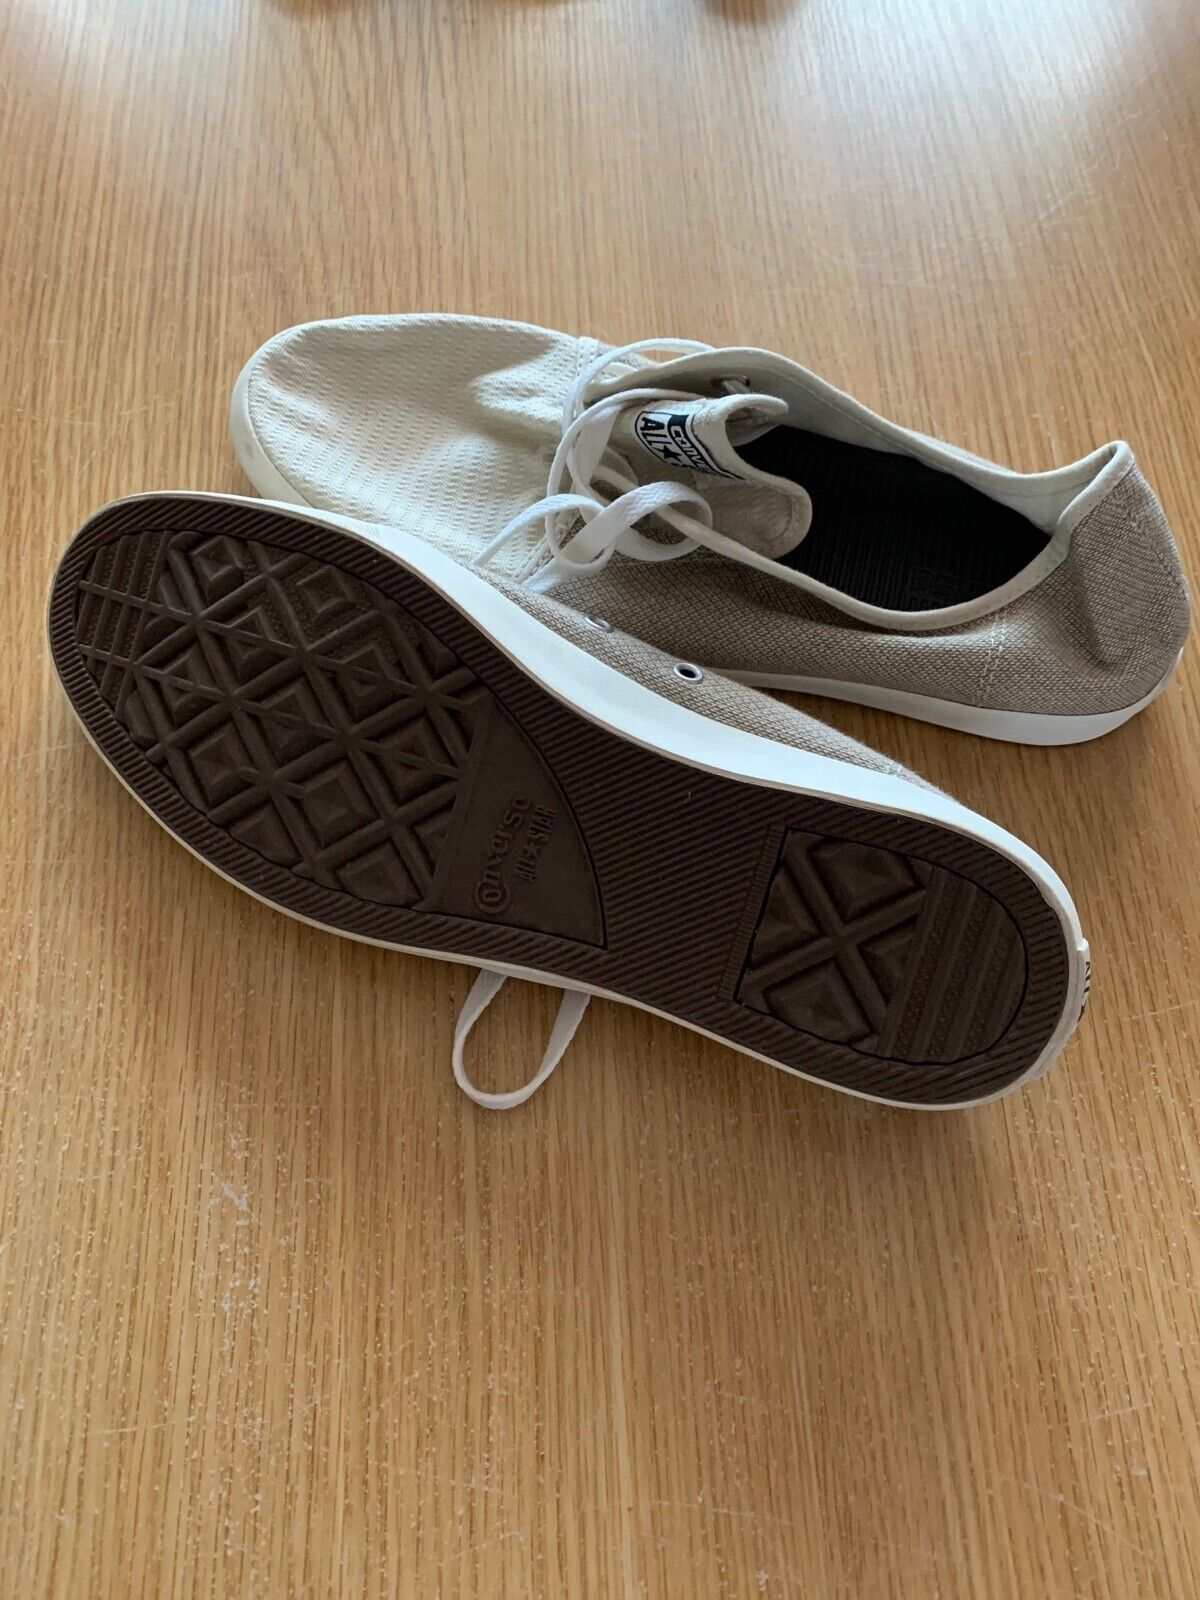 Converse All Star Beige Canvass Shoes - Size 10